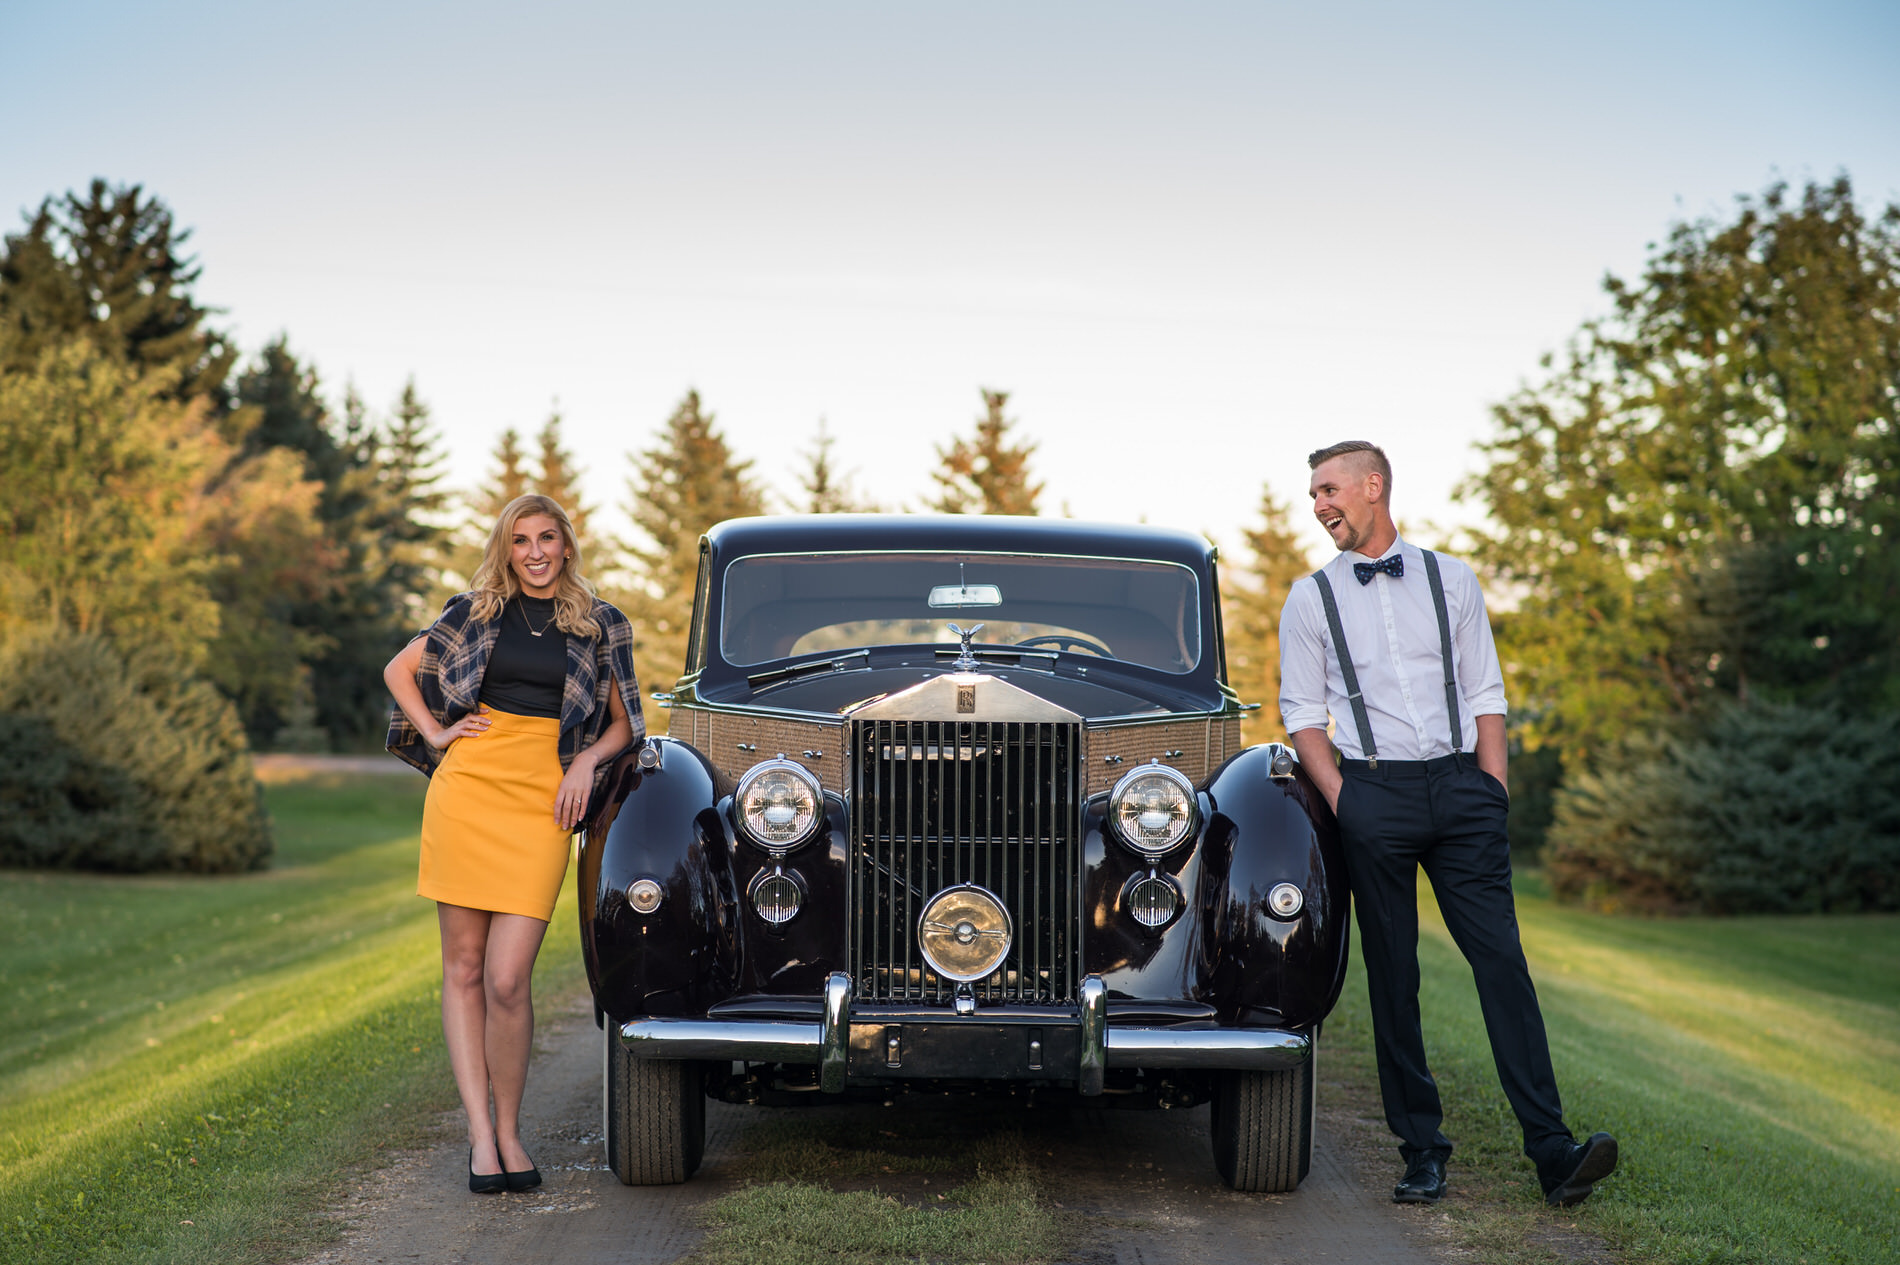 Edmonton_plane_airport_rolls_royve_engagement_photo_karen_ben_11.jpg